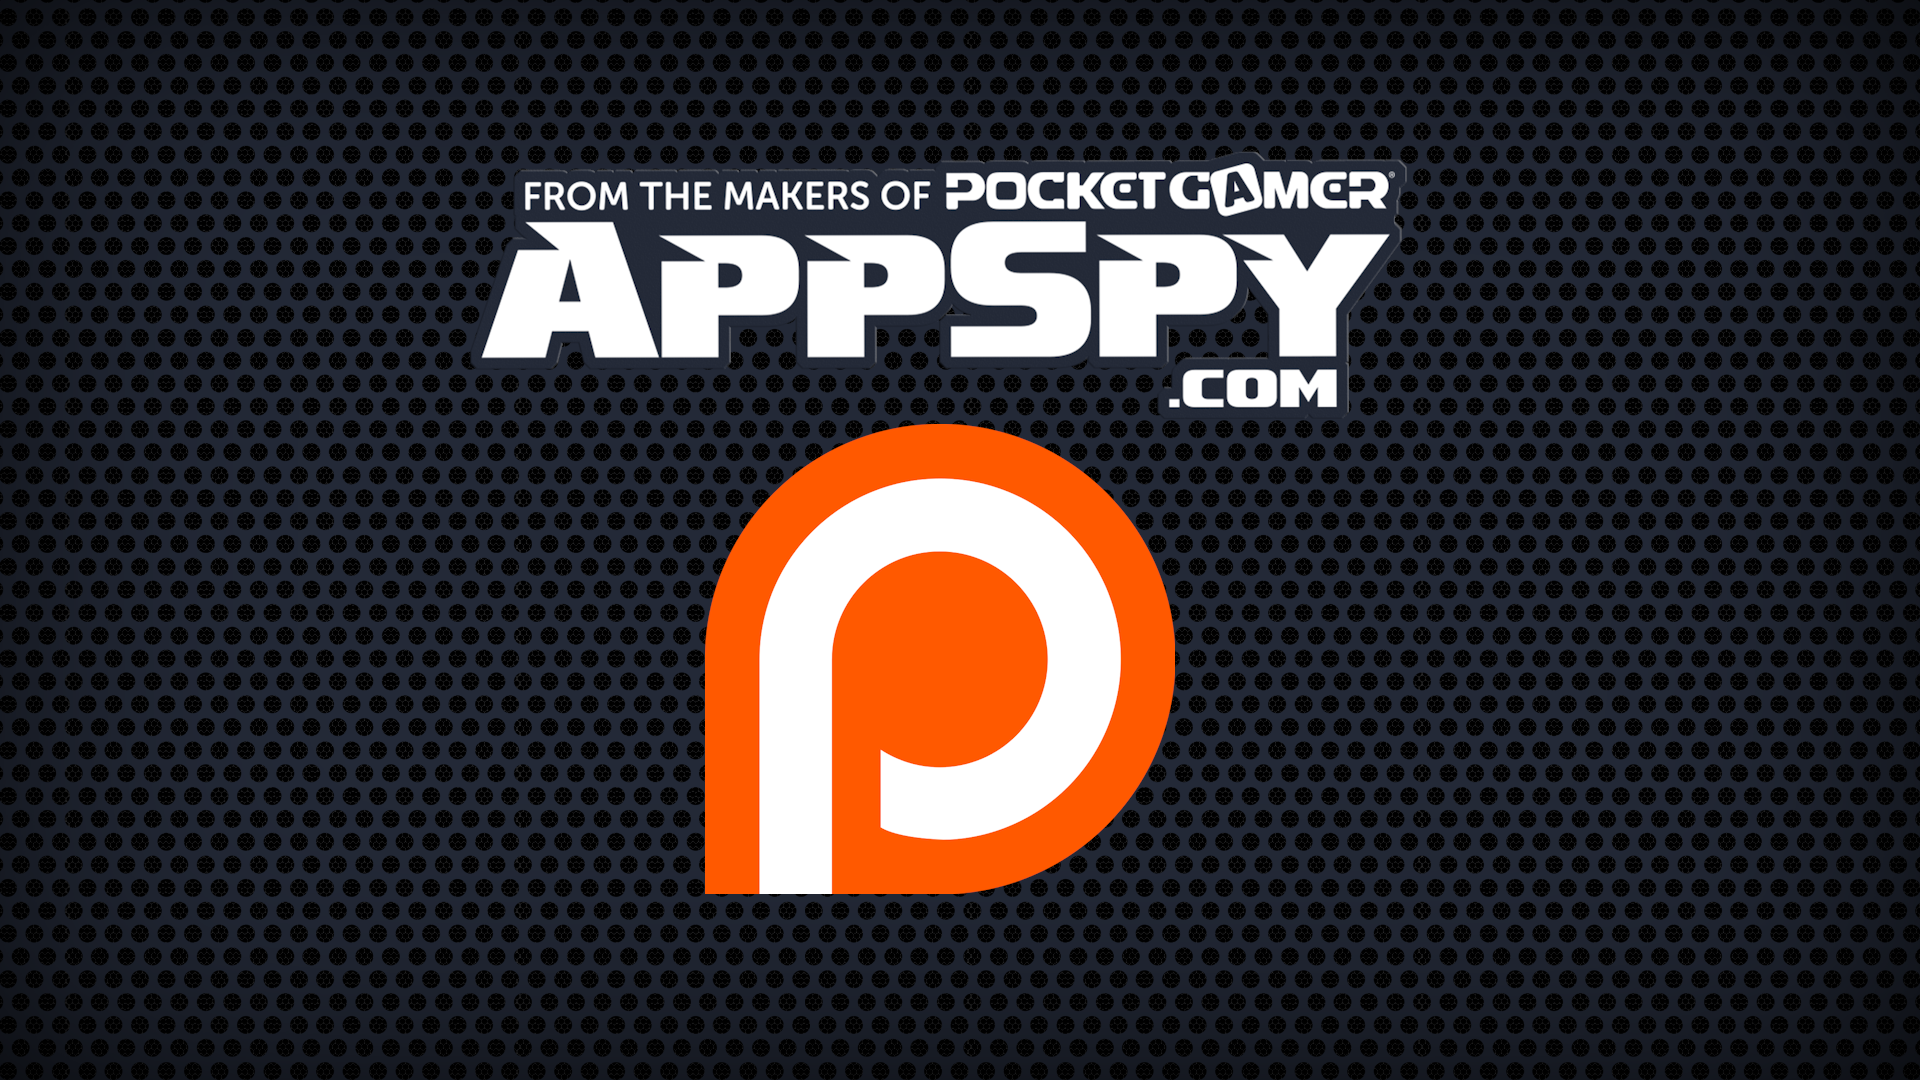 Pocket Gamer's video team AppSpy has launched a Patreon campaign